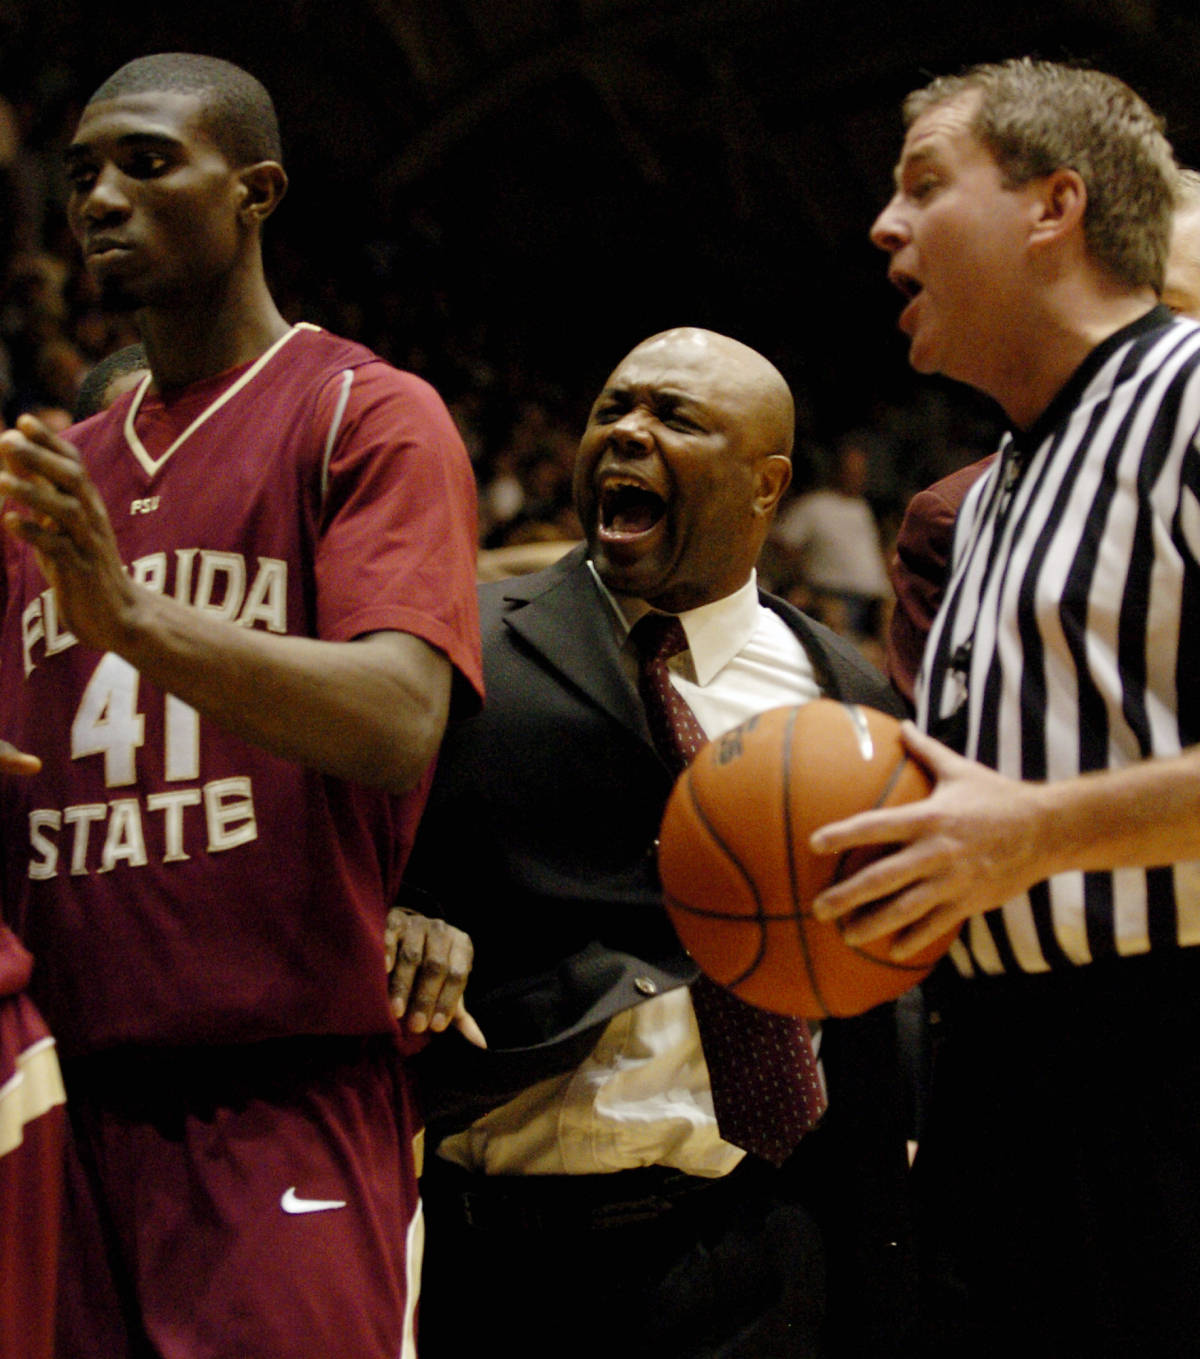 Florida State's head coach Leonard Hamilton yells to his bench to keep quiet as official Curtis Shaw issues a technical on the bench in the second half of a basketball game in Durham, N.C., on Sunday, Feb. 4, 2007. Florida State upset Duke 68-67. (AP Photo/Sara D. Davis)